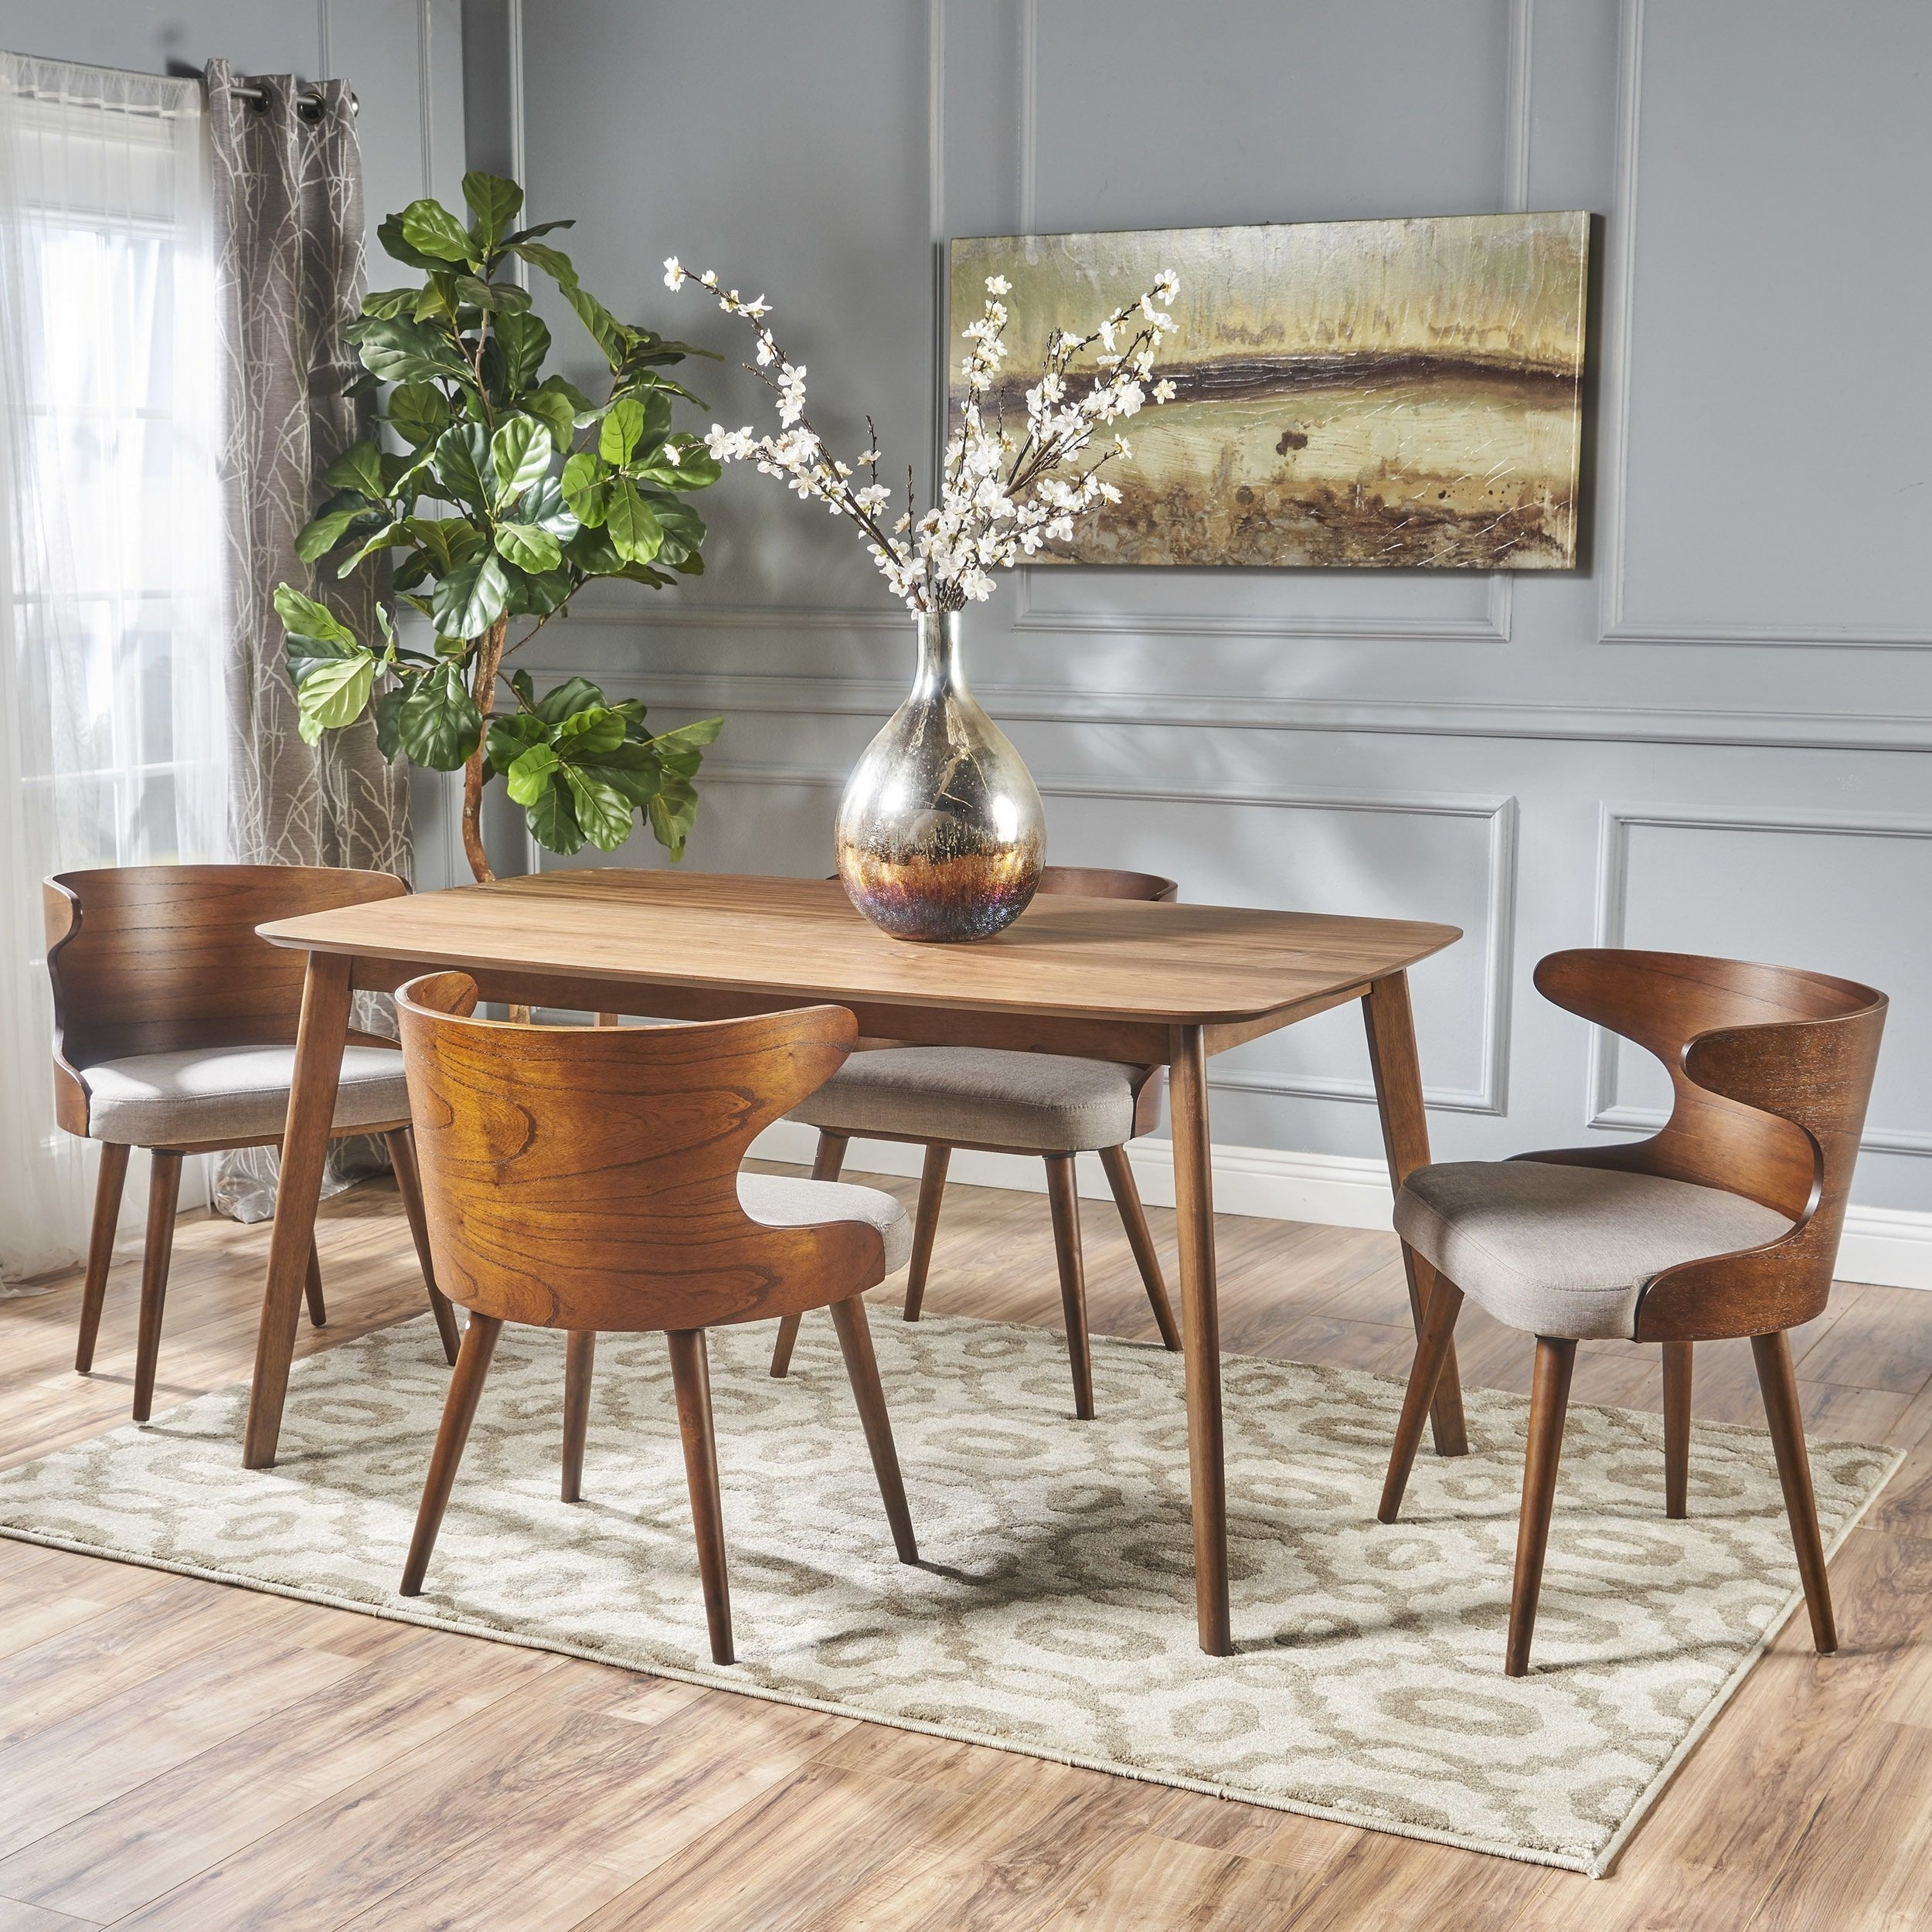 Briella Mid Century 5 Piece Rectangular Wood Dining Set Within Most Current Palazzo 6 Piece Rectangle Dining Sets With Joss Side Chairs (Image 2 of 20)